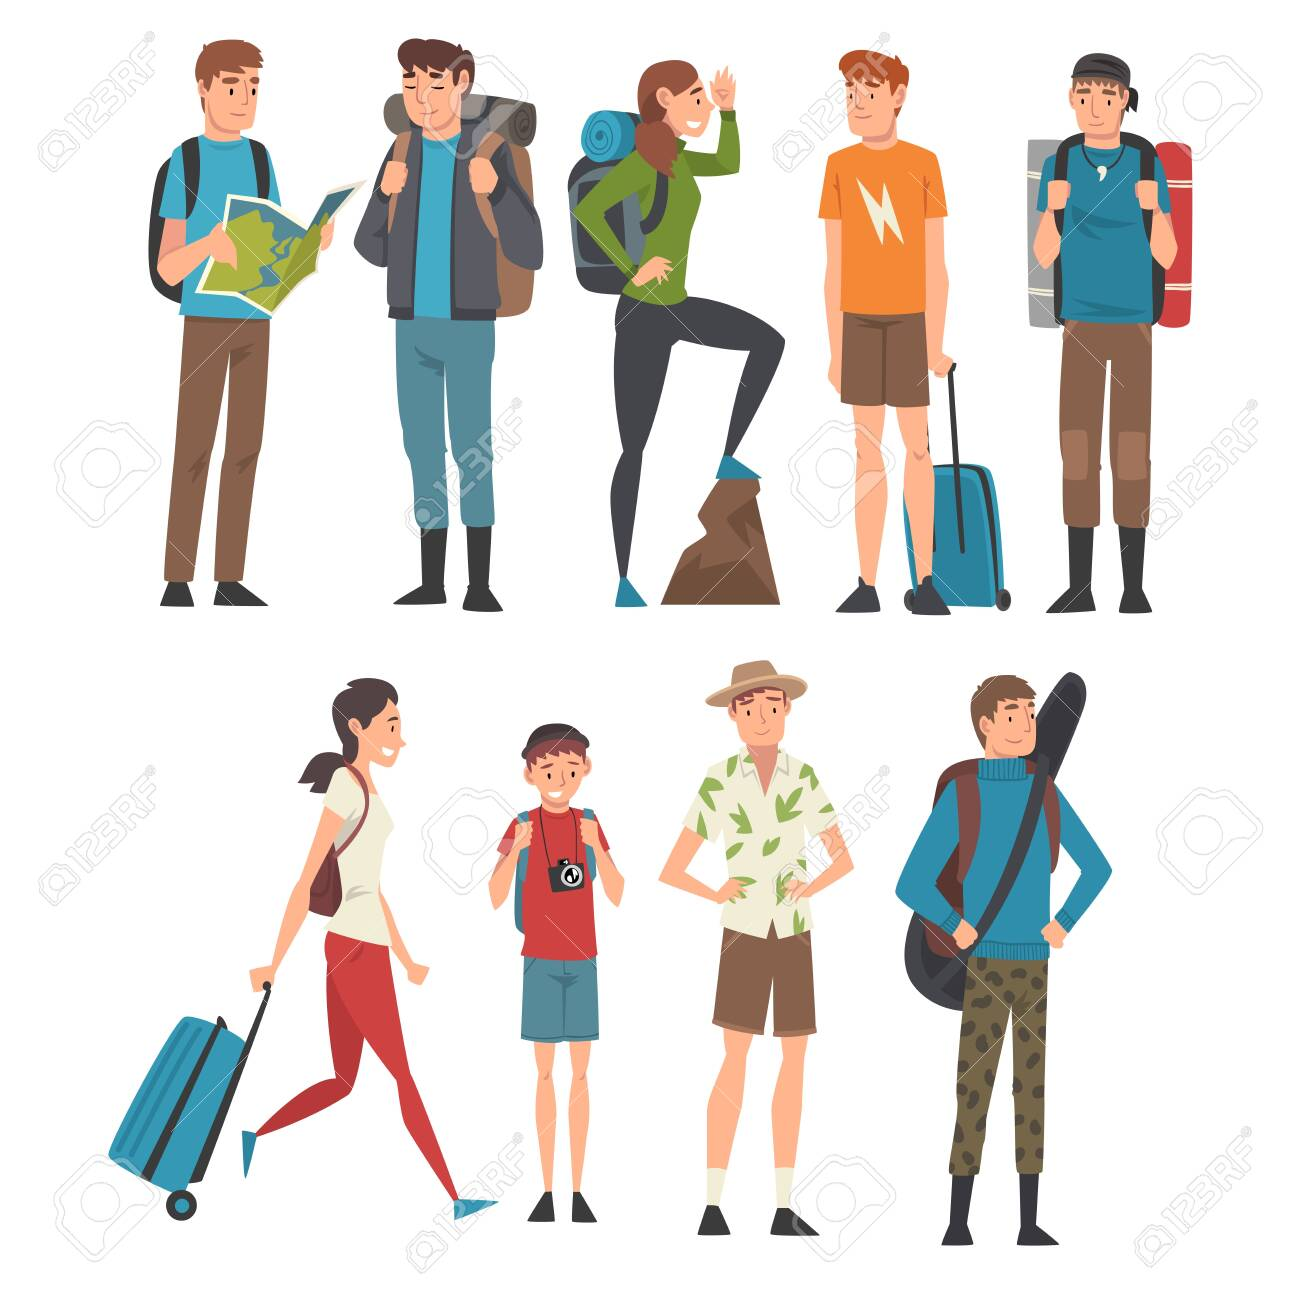 Male and Female Tourists Travelling Set, People Having Summer Travel, Backpacking Trip or Expedition Vector Illustration - 134691245